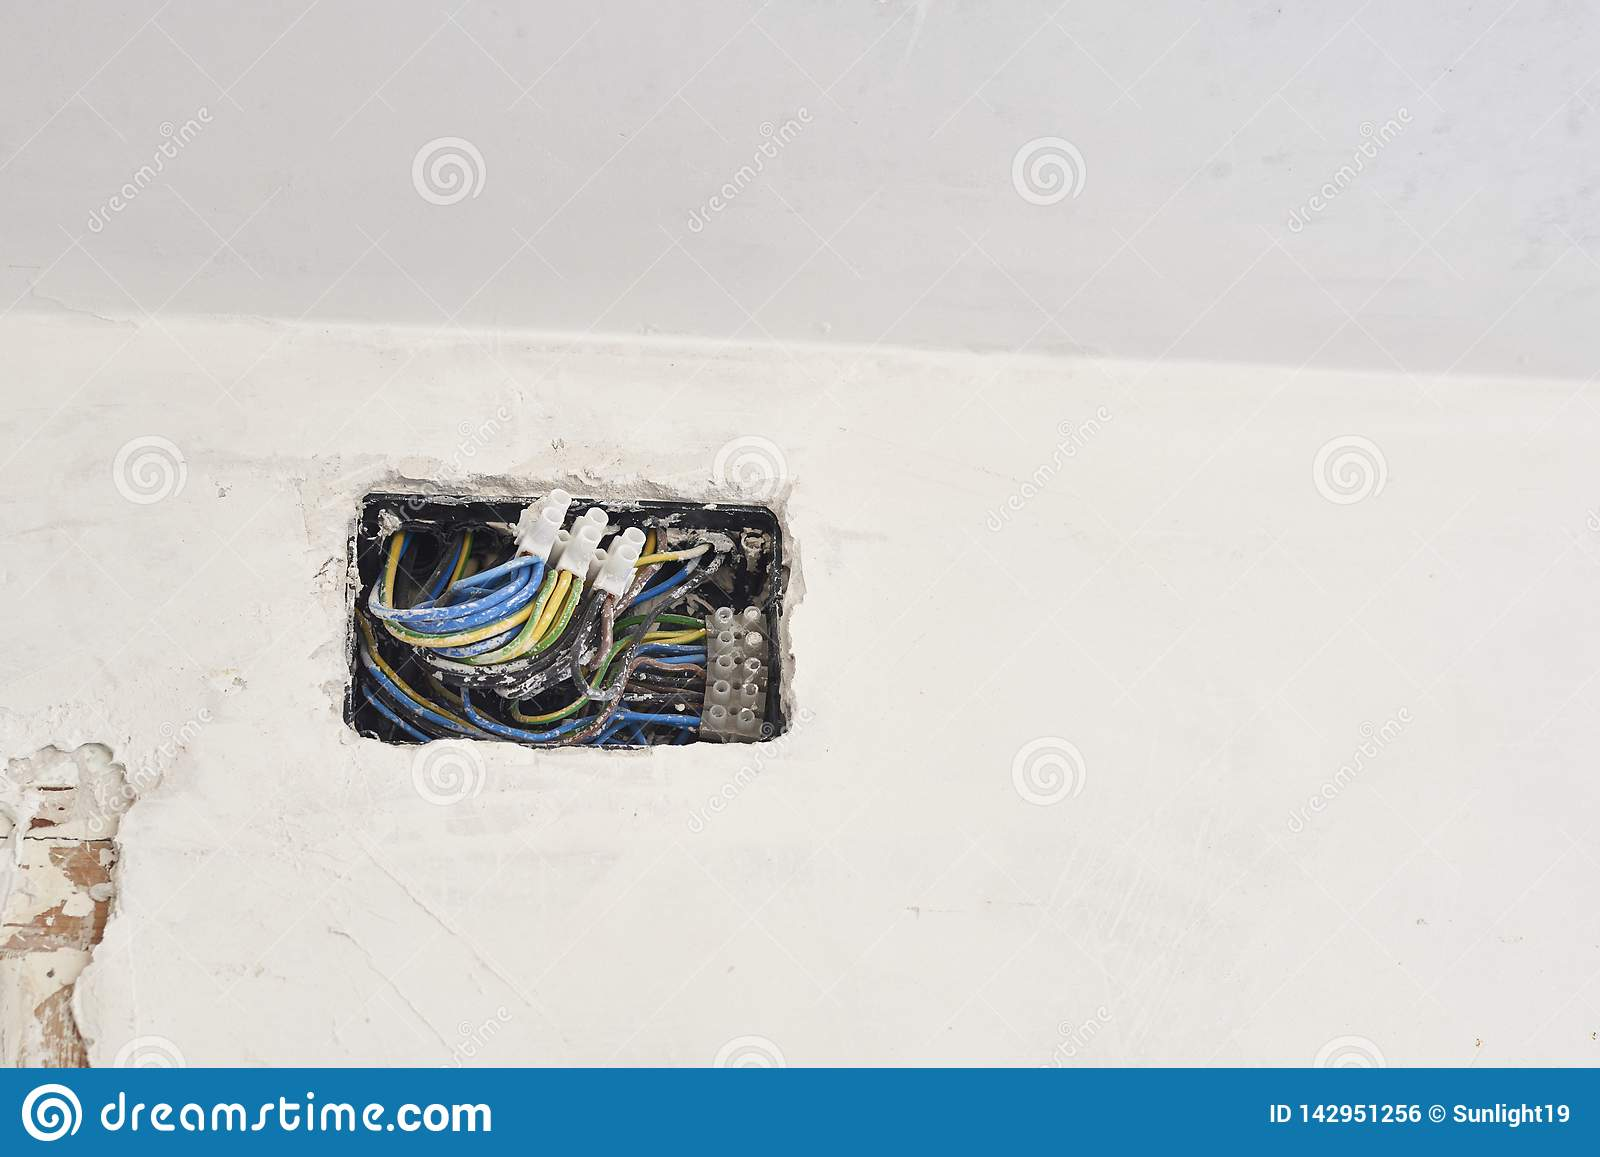 hight resolution of boxes and cables of new electrical installation diy house indoor improvements room construction